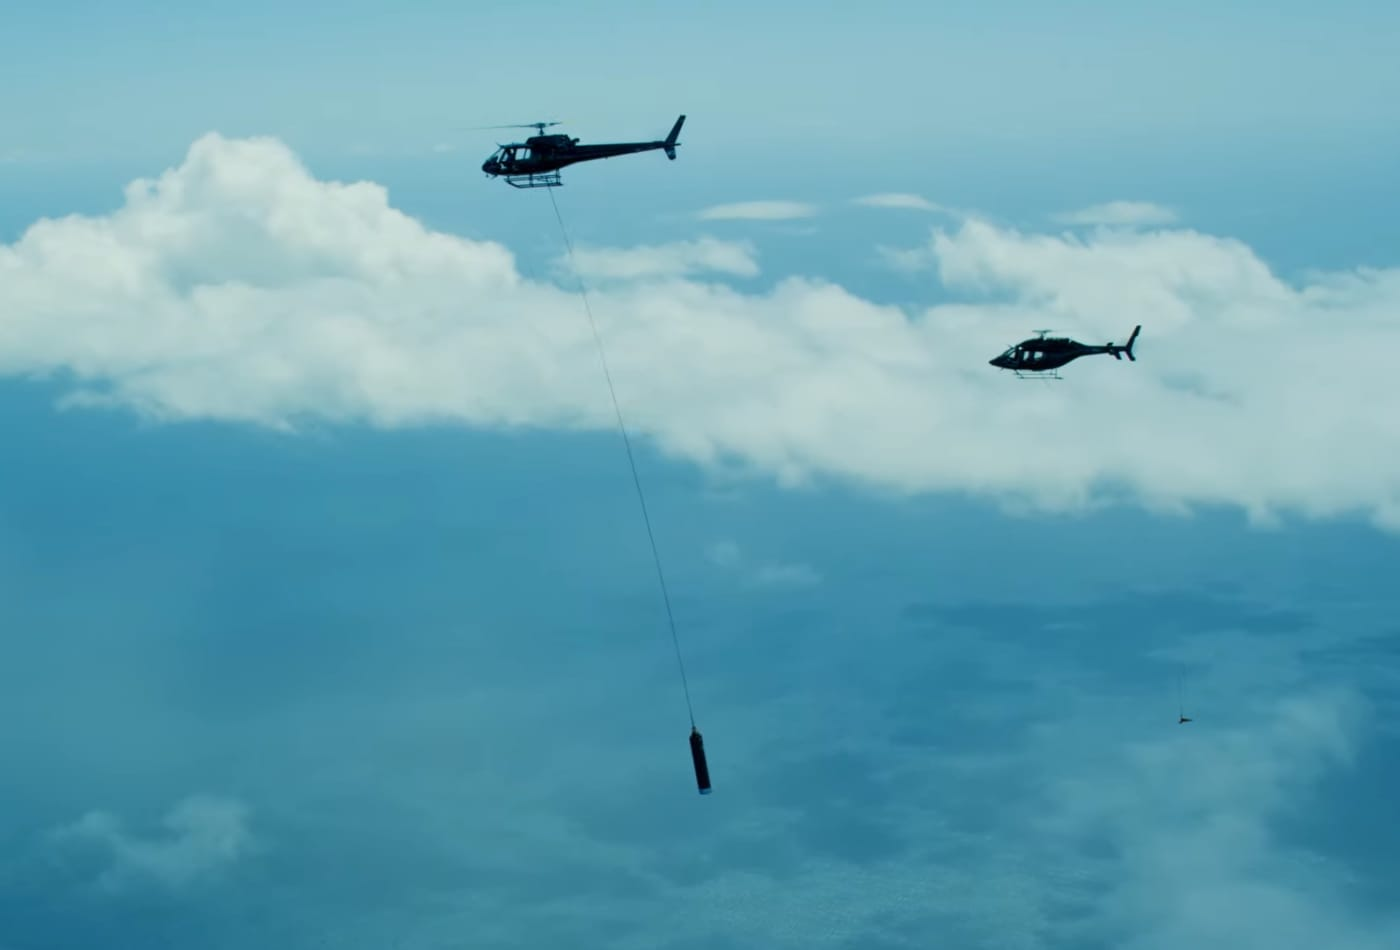 Rocket Lab's helicopter snagged a parachute from the sky in a key test toward reusing rockets